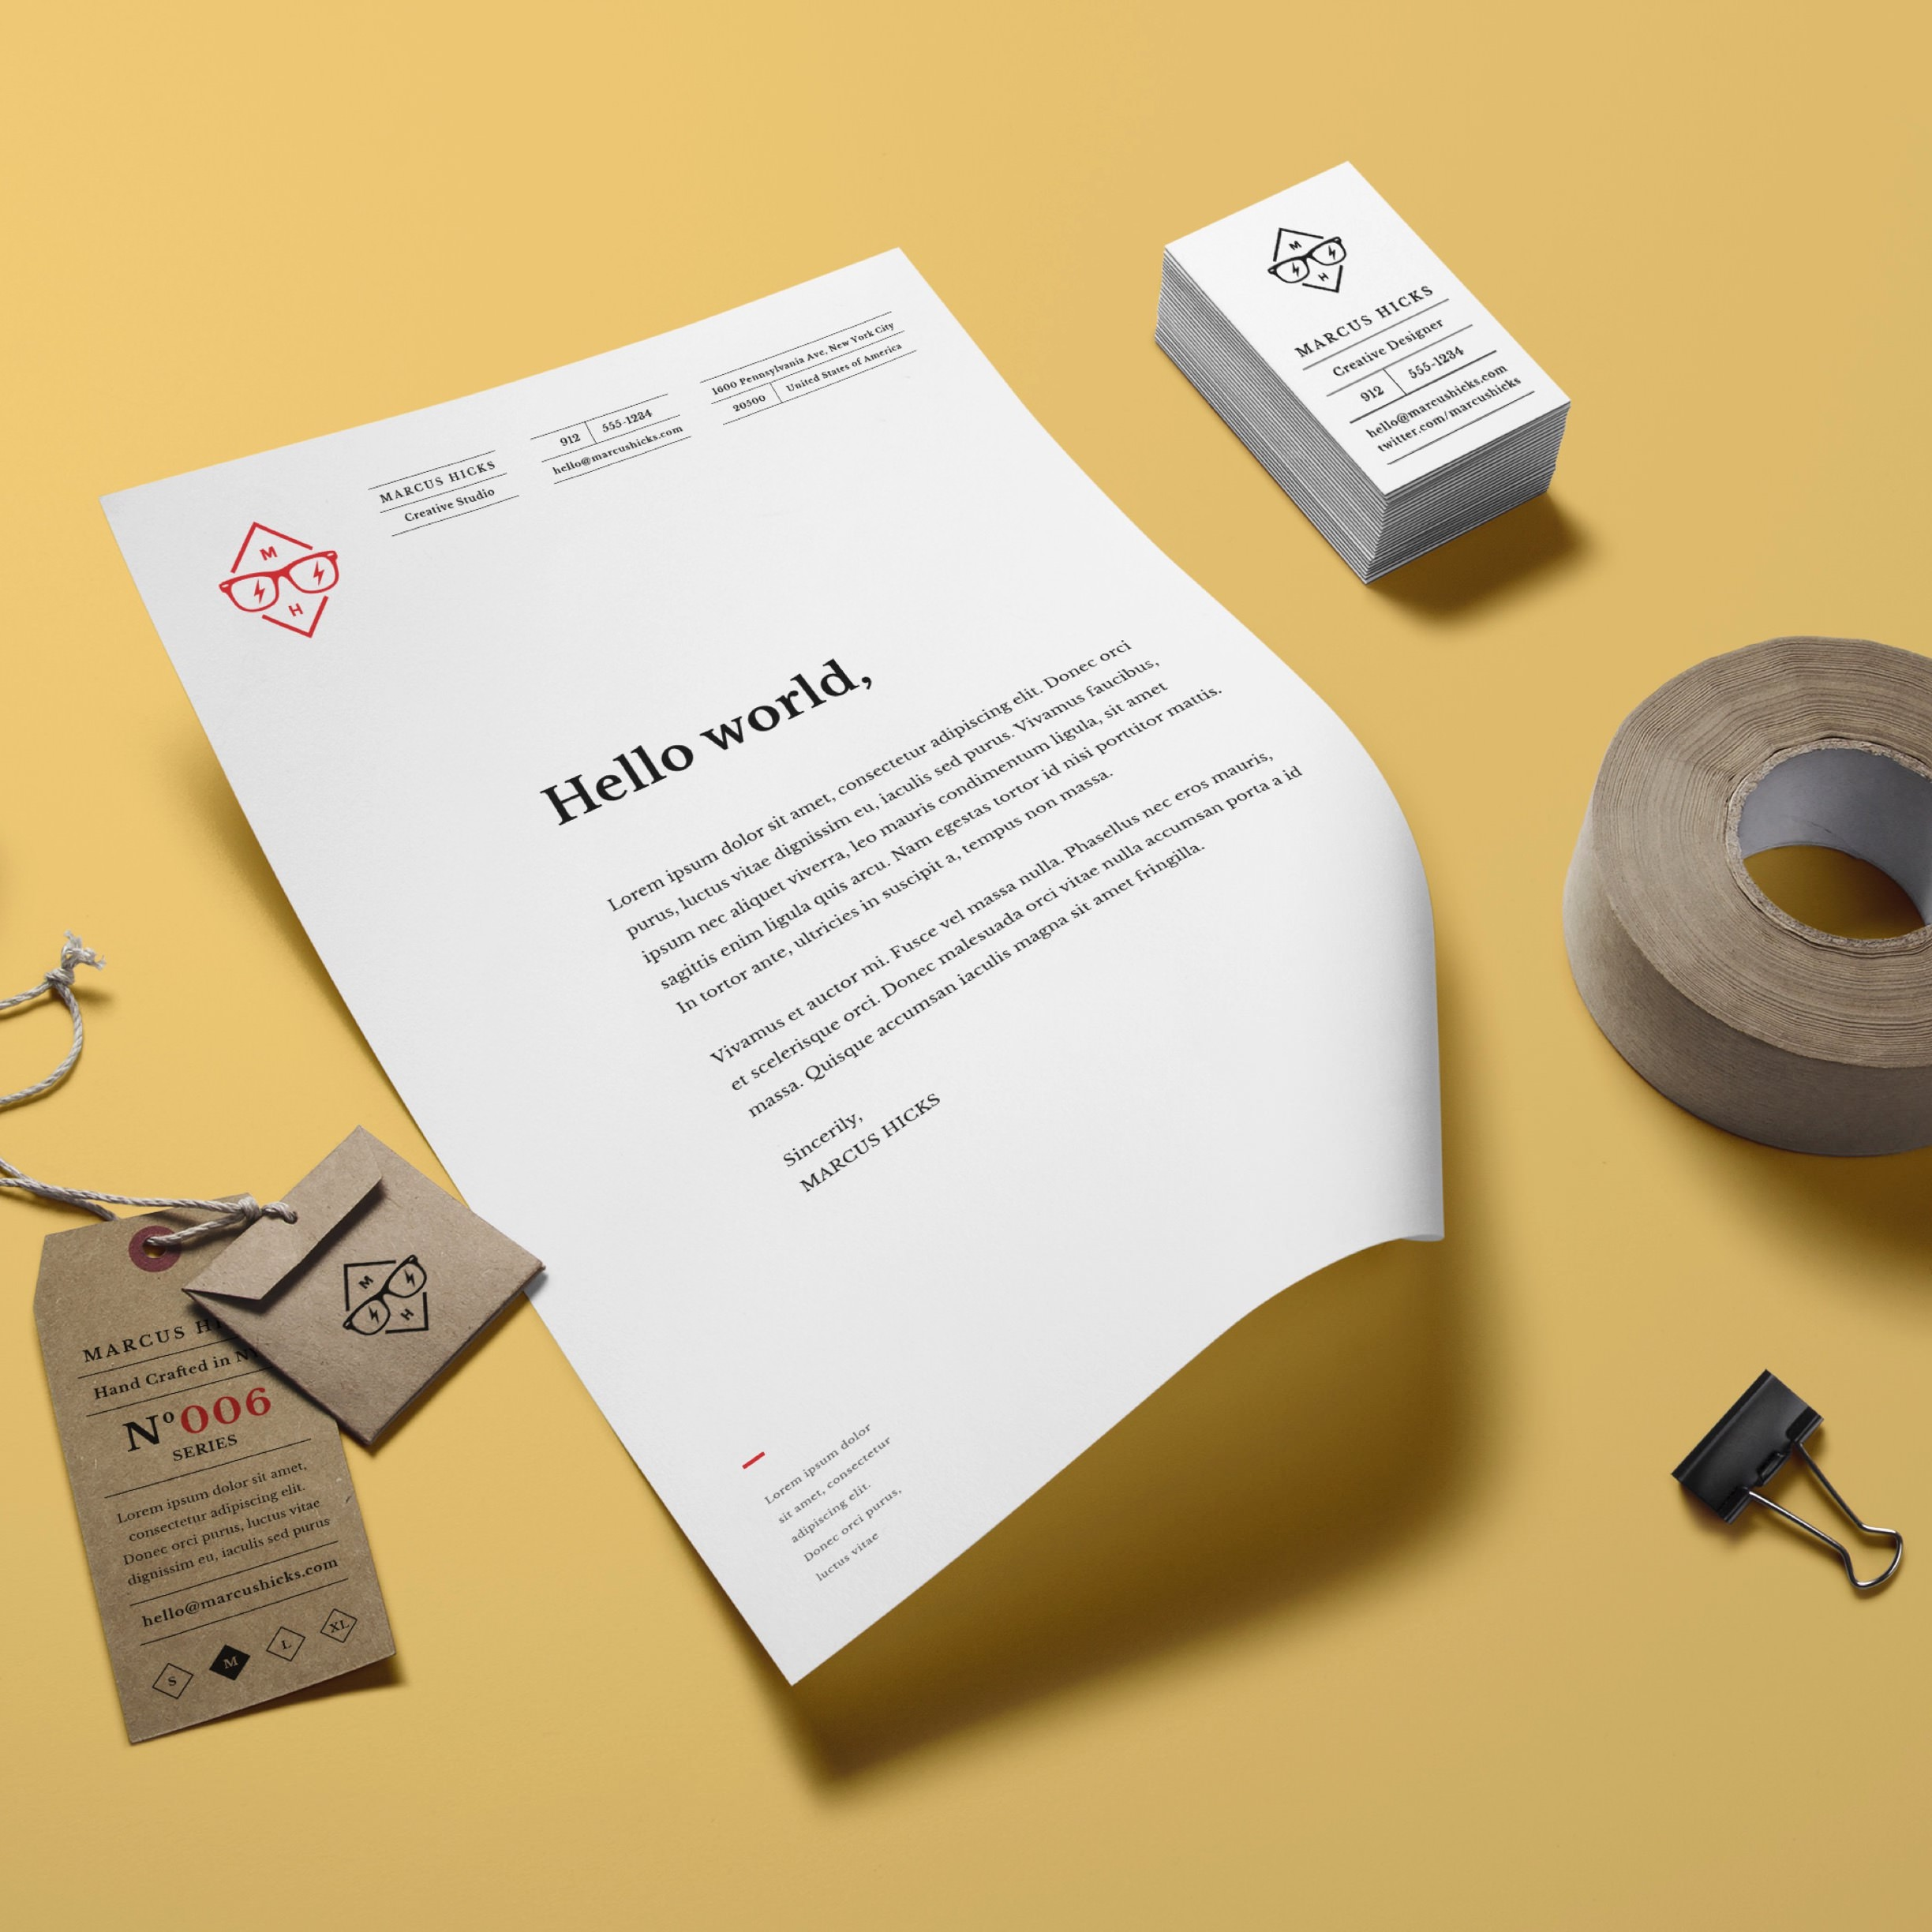 Stationery white yellow business card tape wallpaper ipad ipad wallpaper reheart Image collections